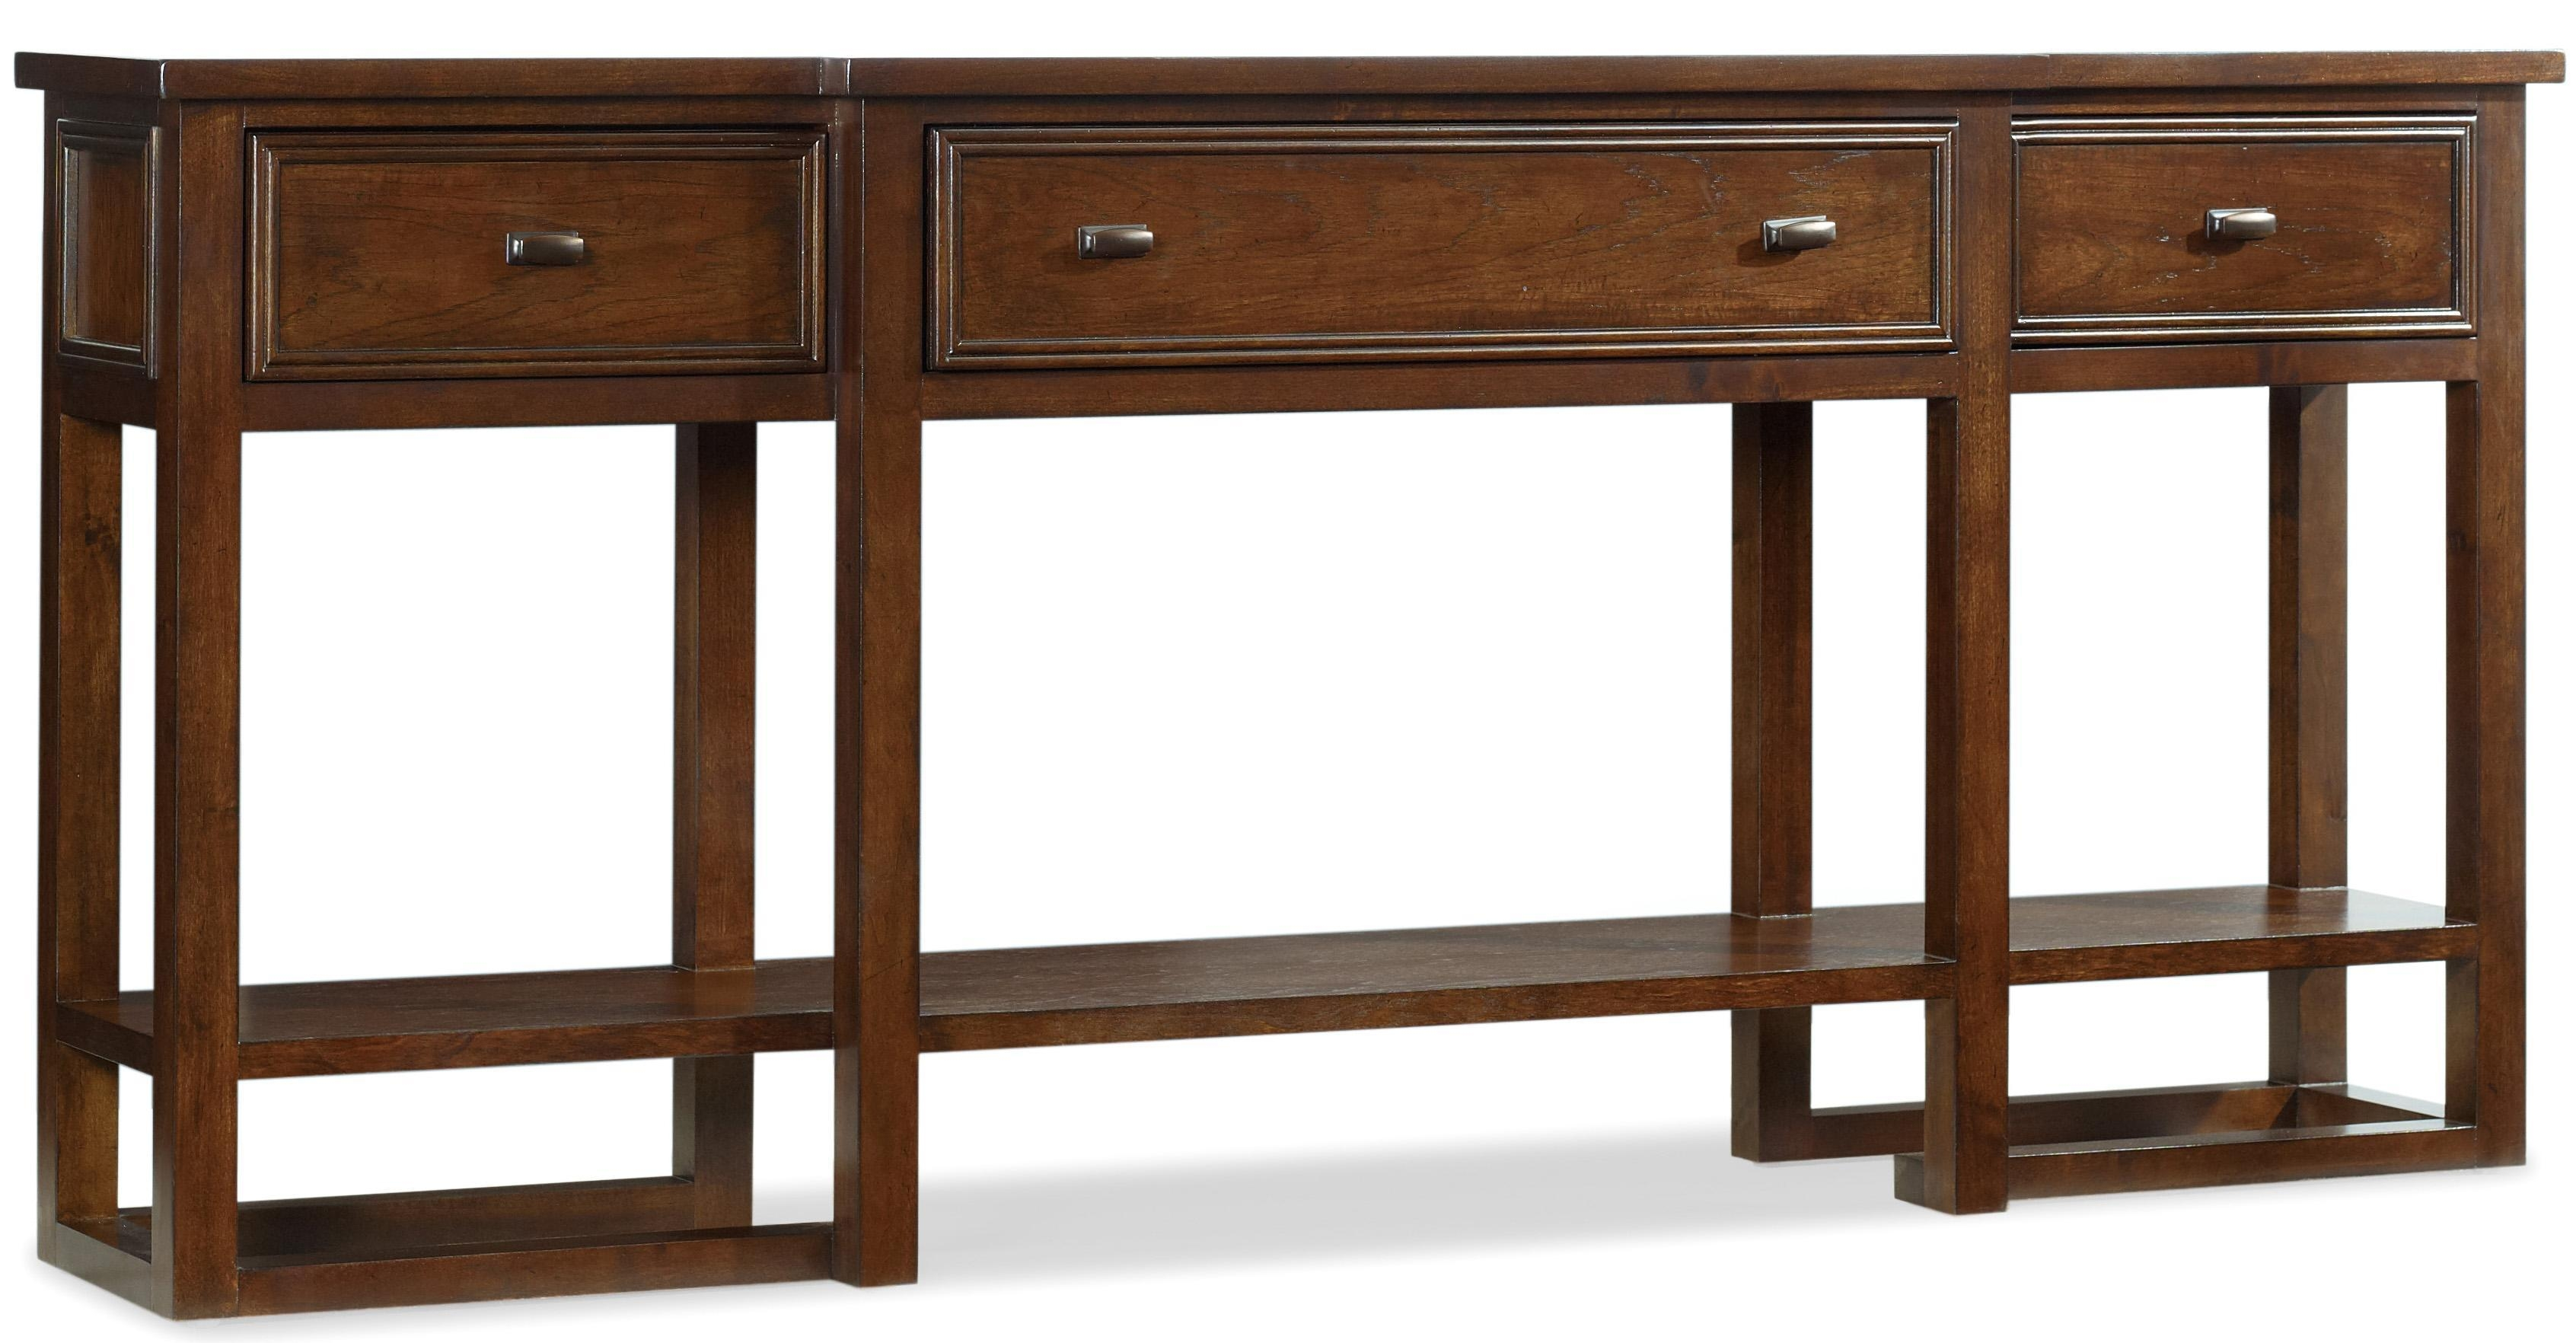 Hooker Furniture Lorimer 72 Inch Sofa Table With Breakfront, 3 With Sofa Table Drawers (Image 6 of 20)